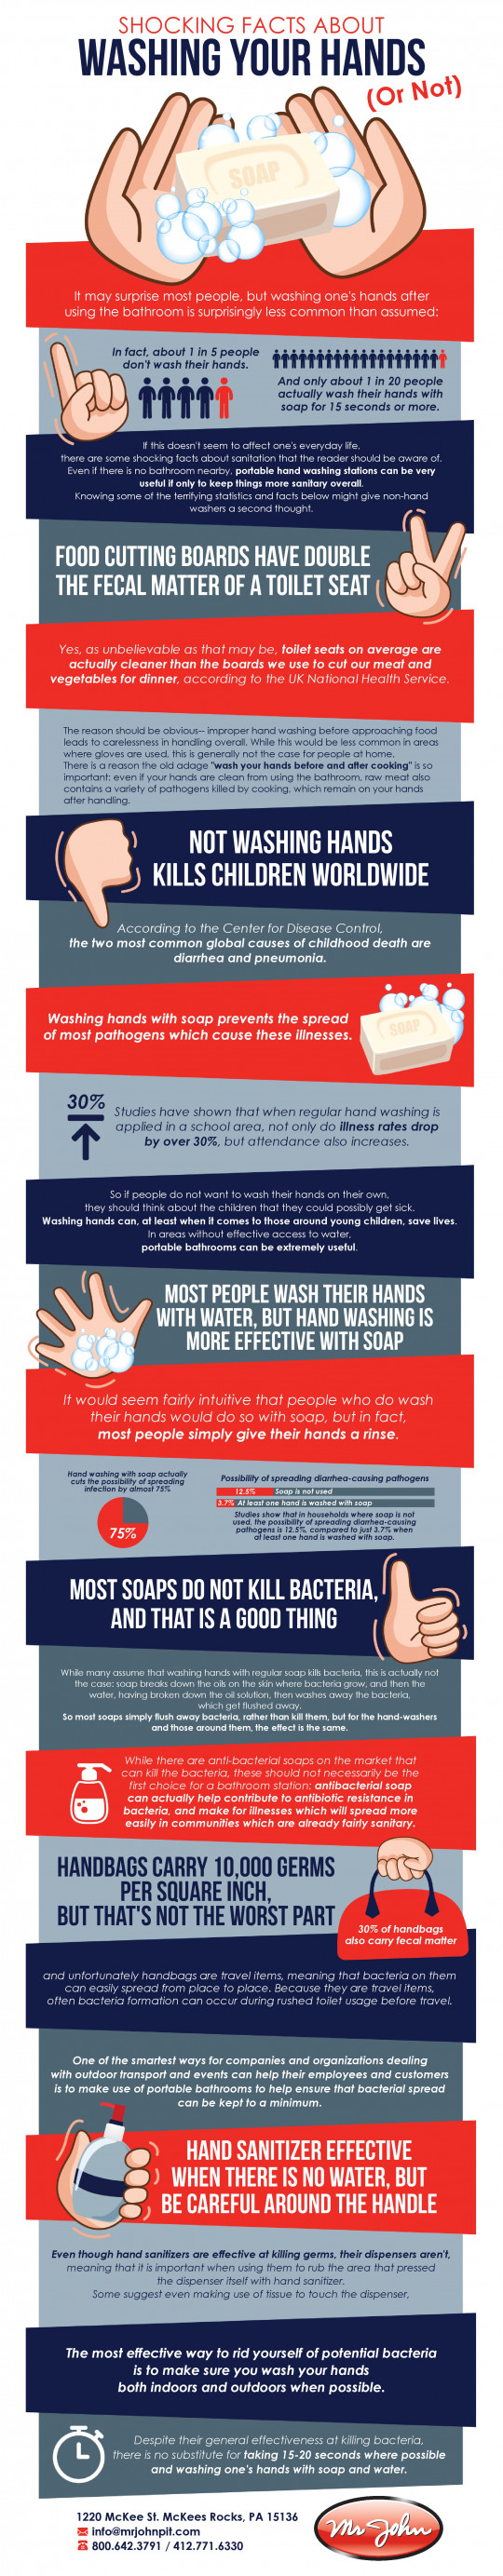 Shocking Facts About Washing Your Hands (Or Not!)